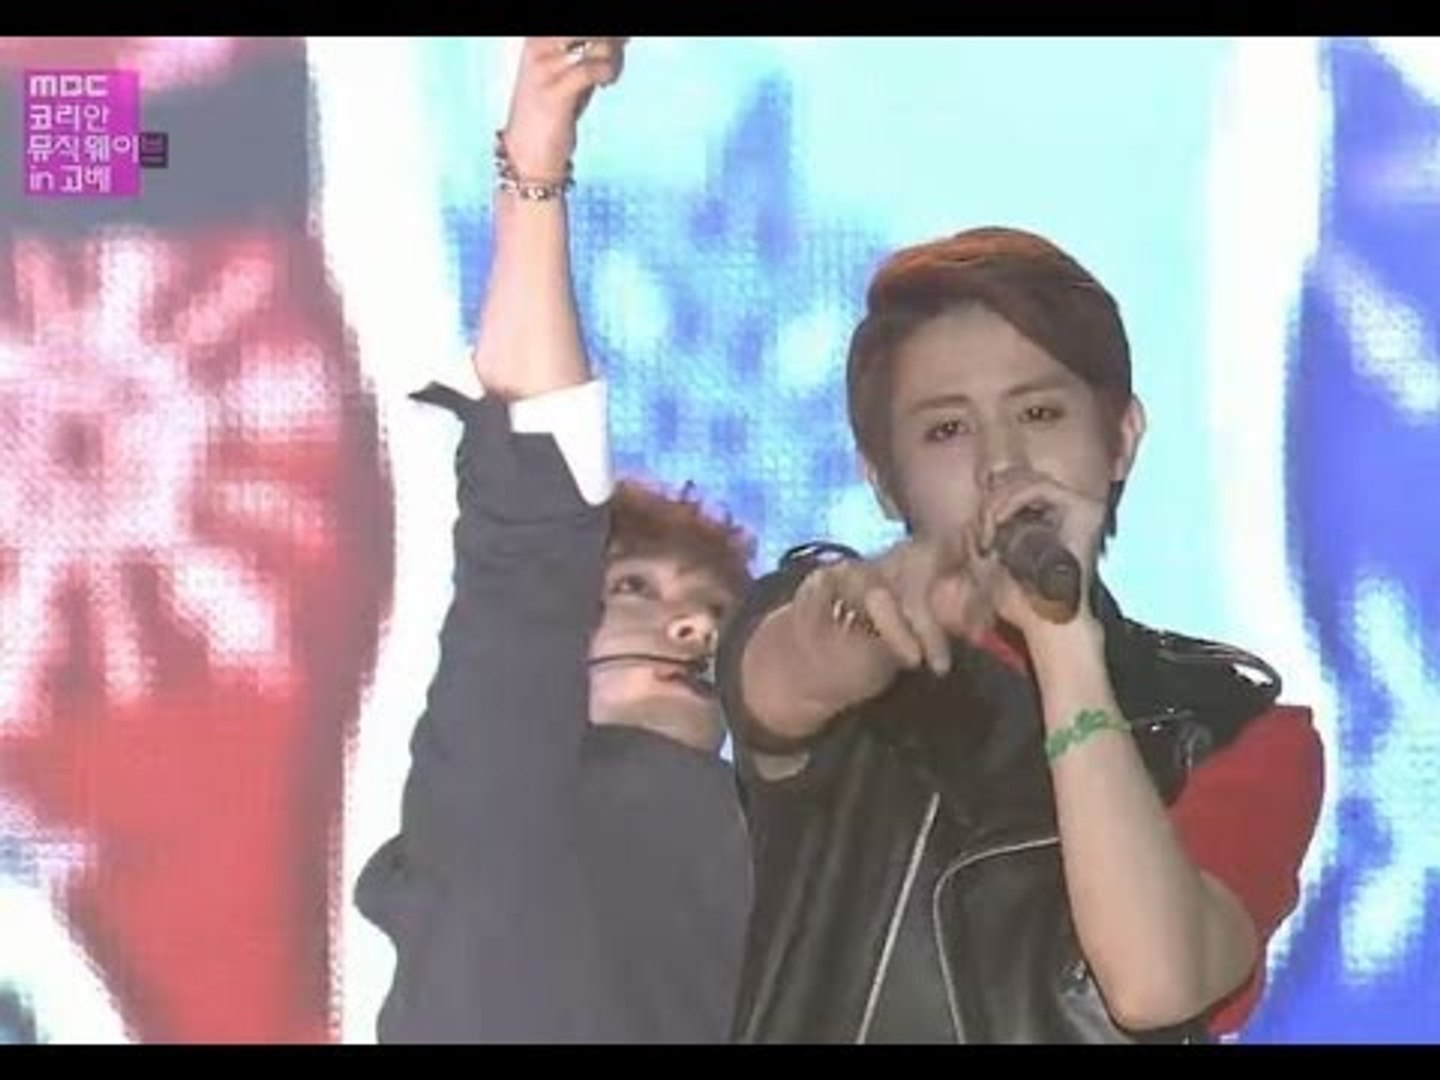 【TVPP】BEAST - Beautiful Night + Beautiful, 비스트 - 아름다운 밤이야 + 뷰티풀 @ 2012 Korean Music Wave in Kobe